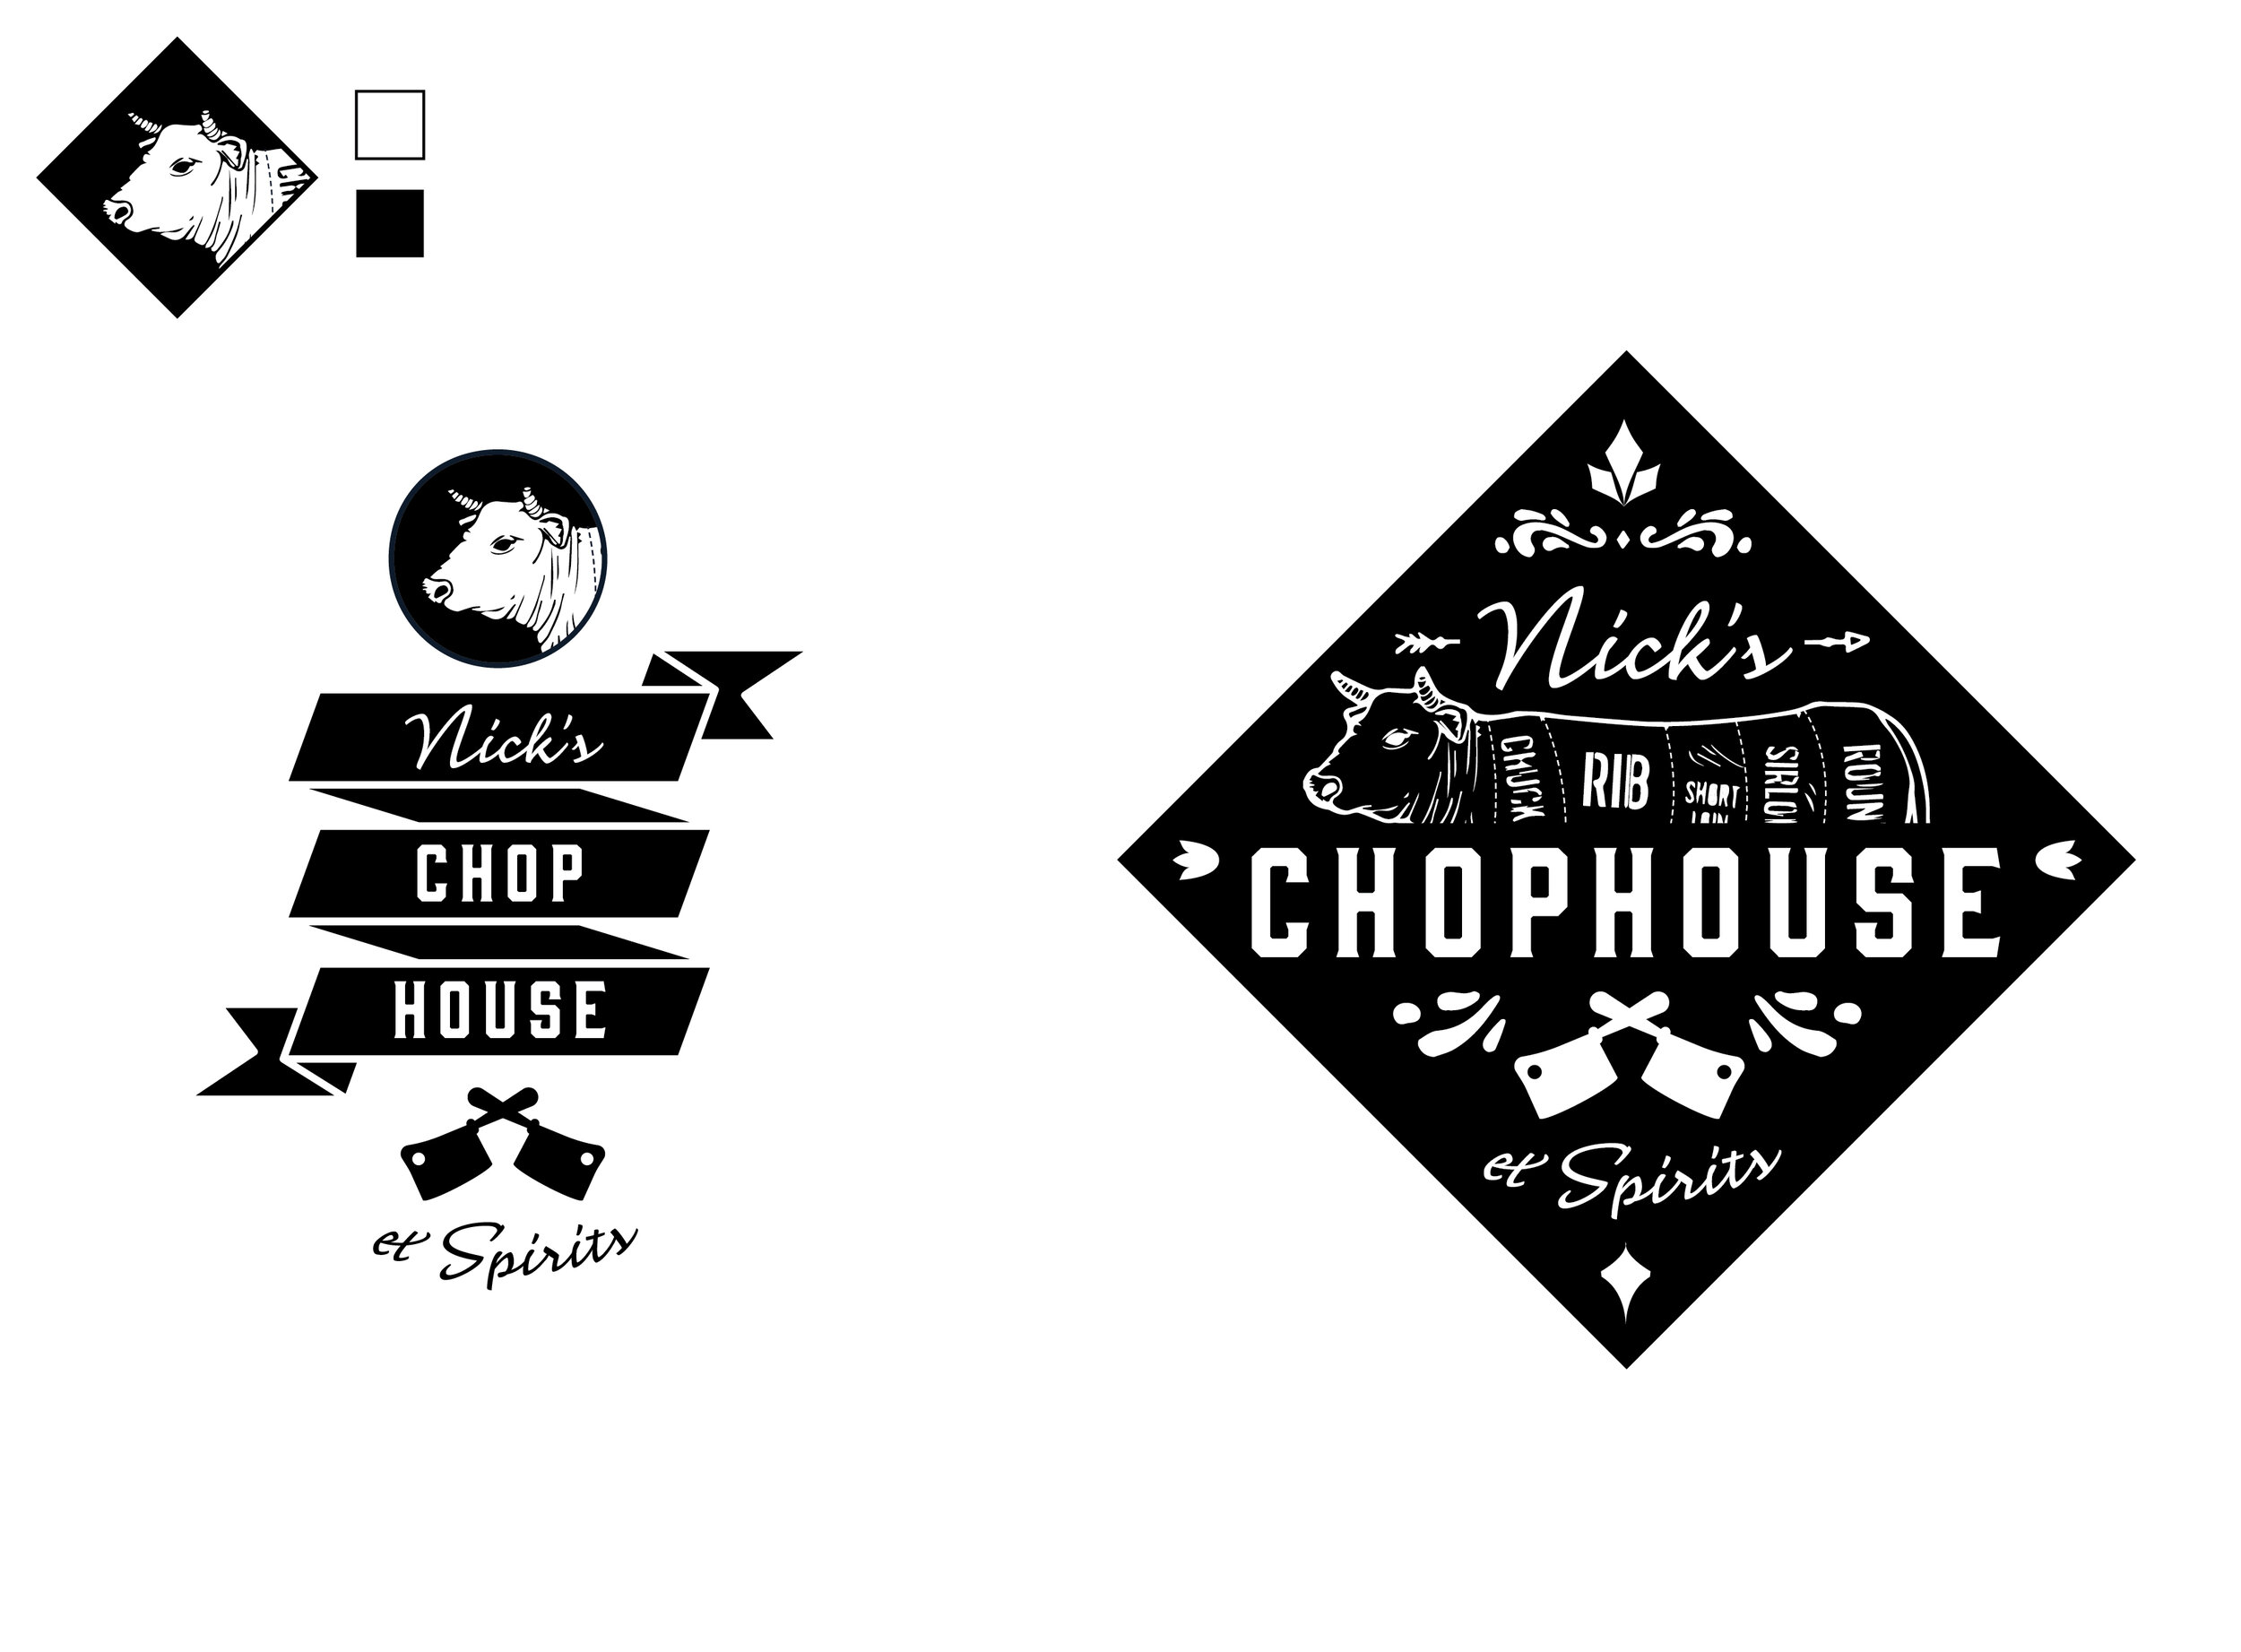 Chophouse-Logos-3-13.jpg